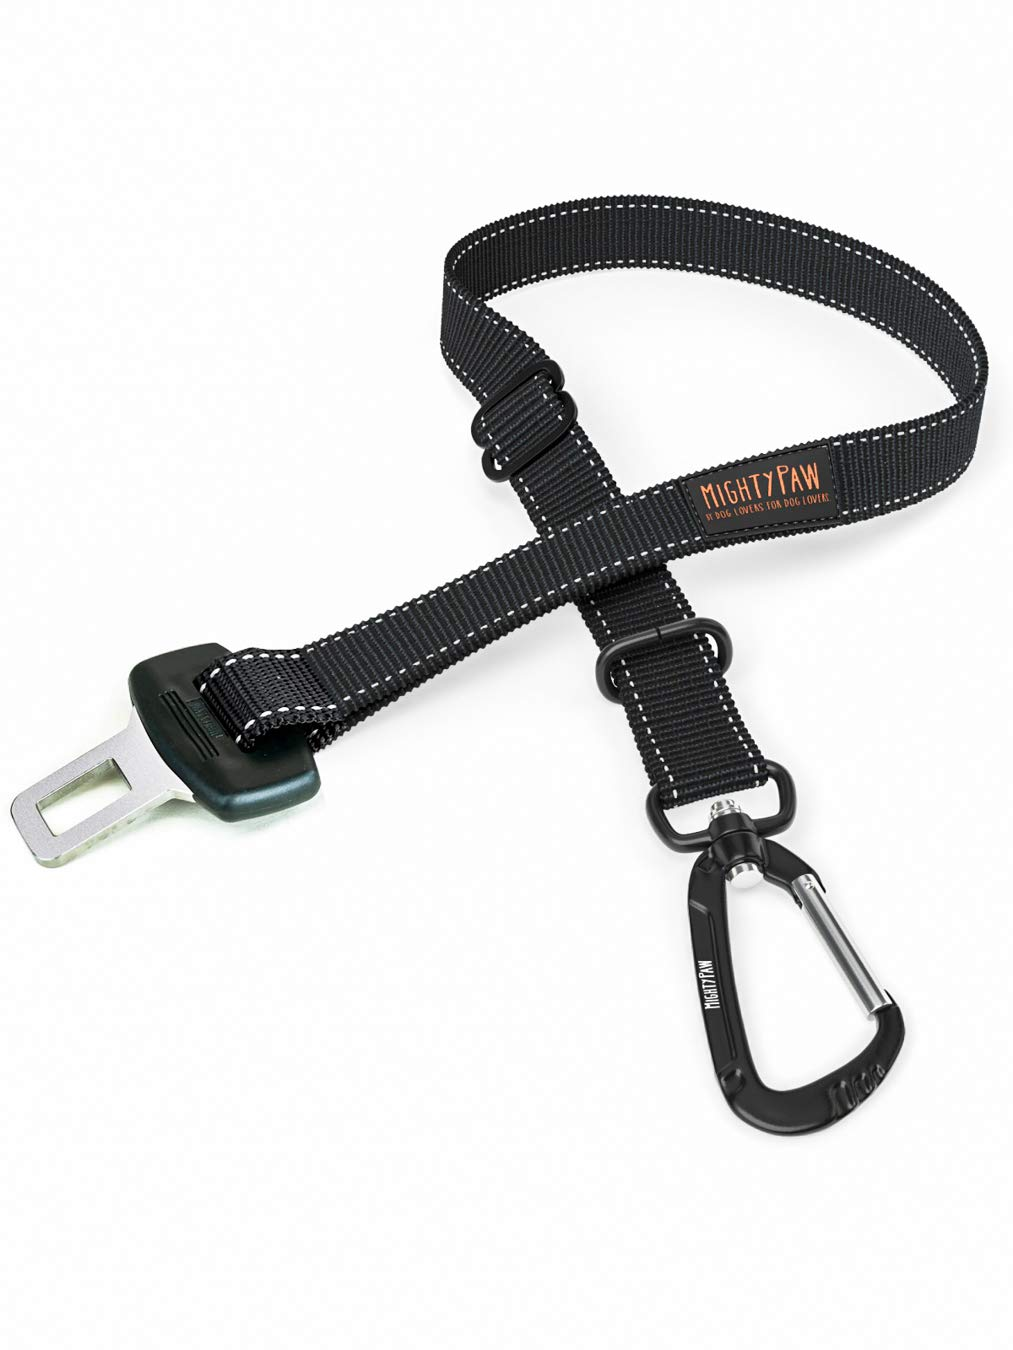 Mighty Paw Dog Seat Belt | Pet Safety Belt, Created with Human Seatbelt Material. All-Metal Hardware with Adjustable Length Strap. Exceeds Dog Safety Standards. Keep Your Dog Secure in The Car by Mighty Paw